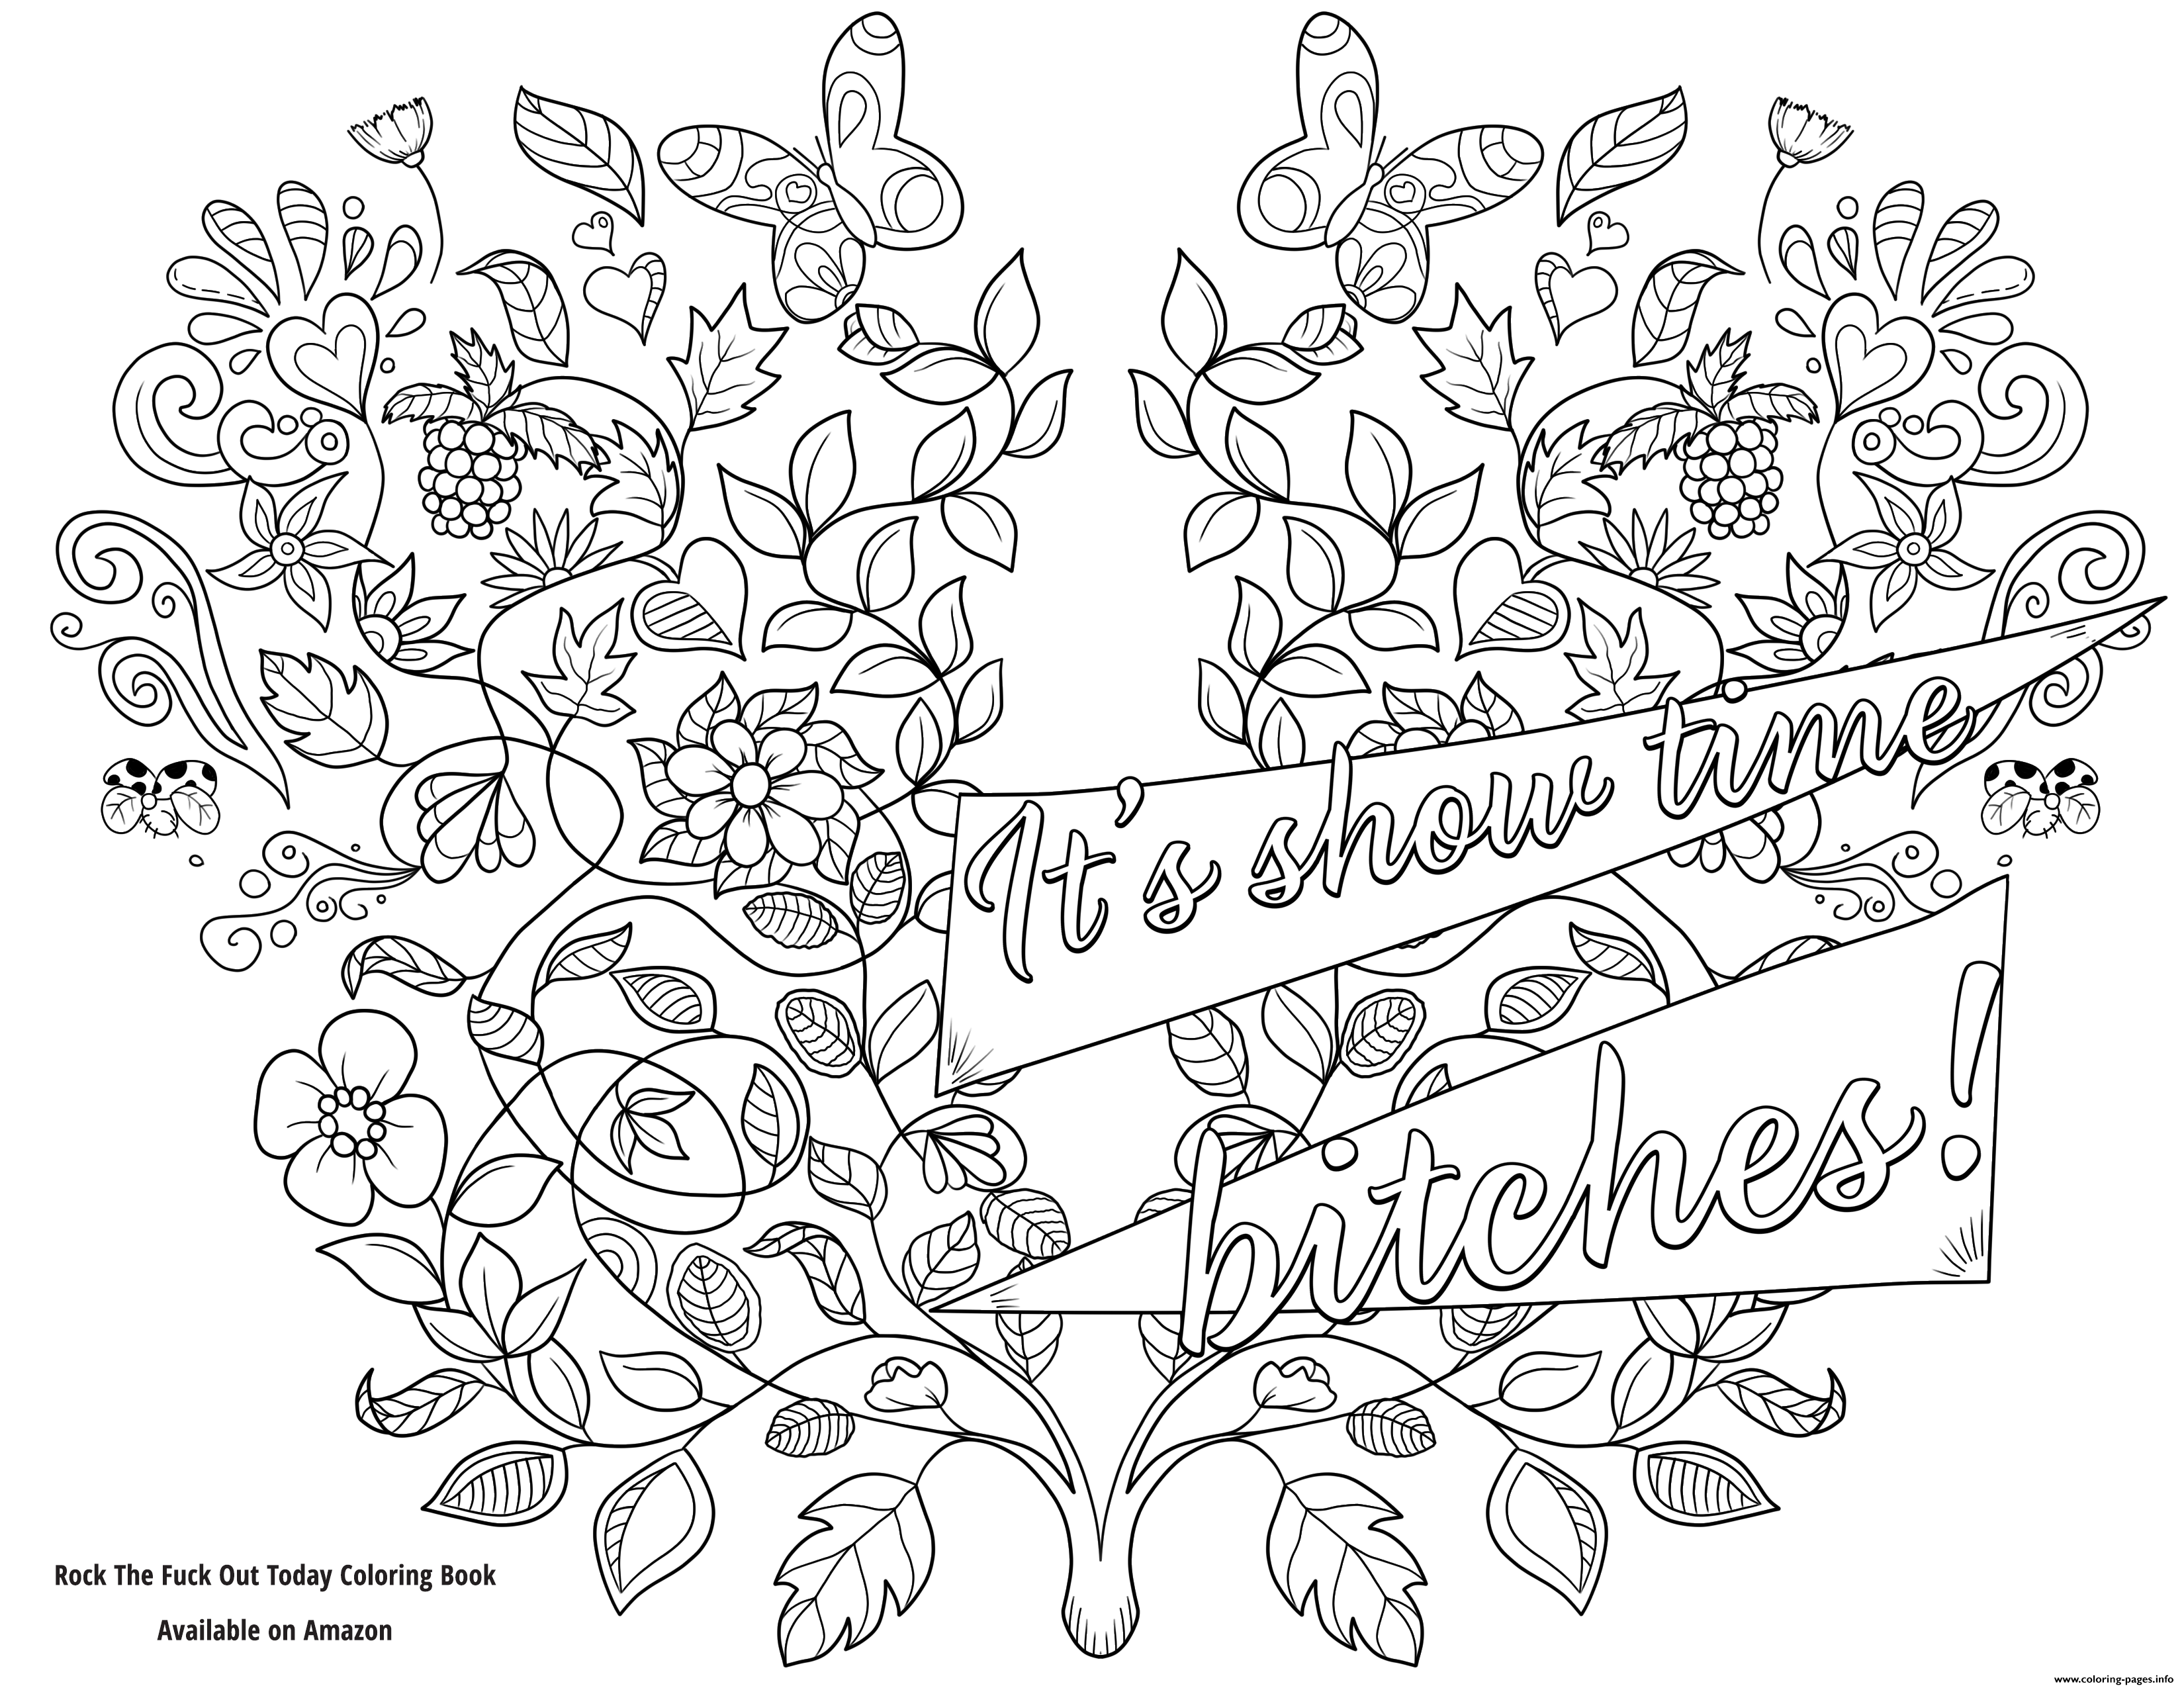 Its Show Time Bitches Swear Word Coloring Pages